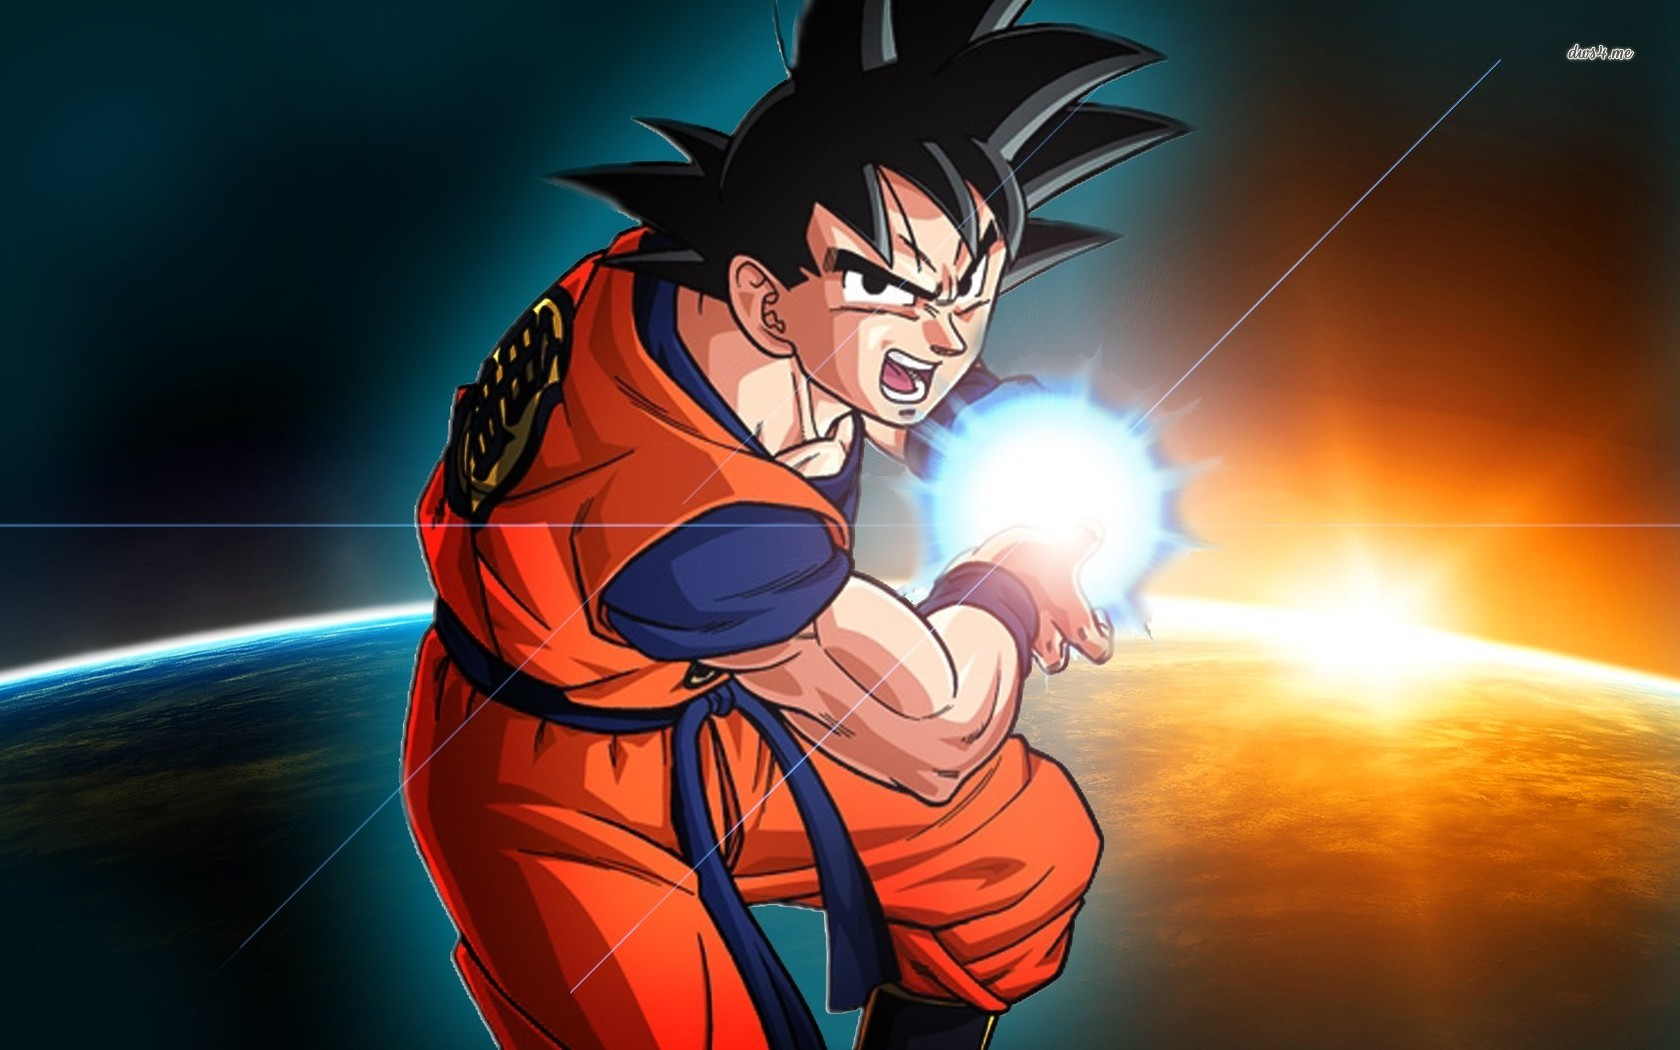 Goku   Dragon Ball Z wallpaper 1280x800 Goku   Dragon Ball Z wallpaper 1680x1050